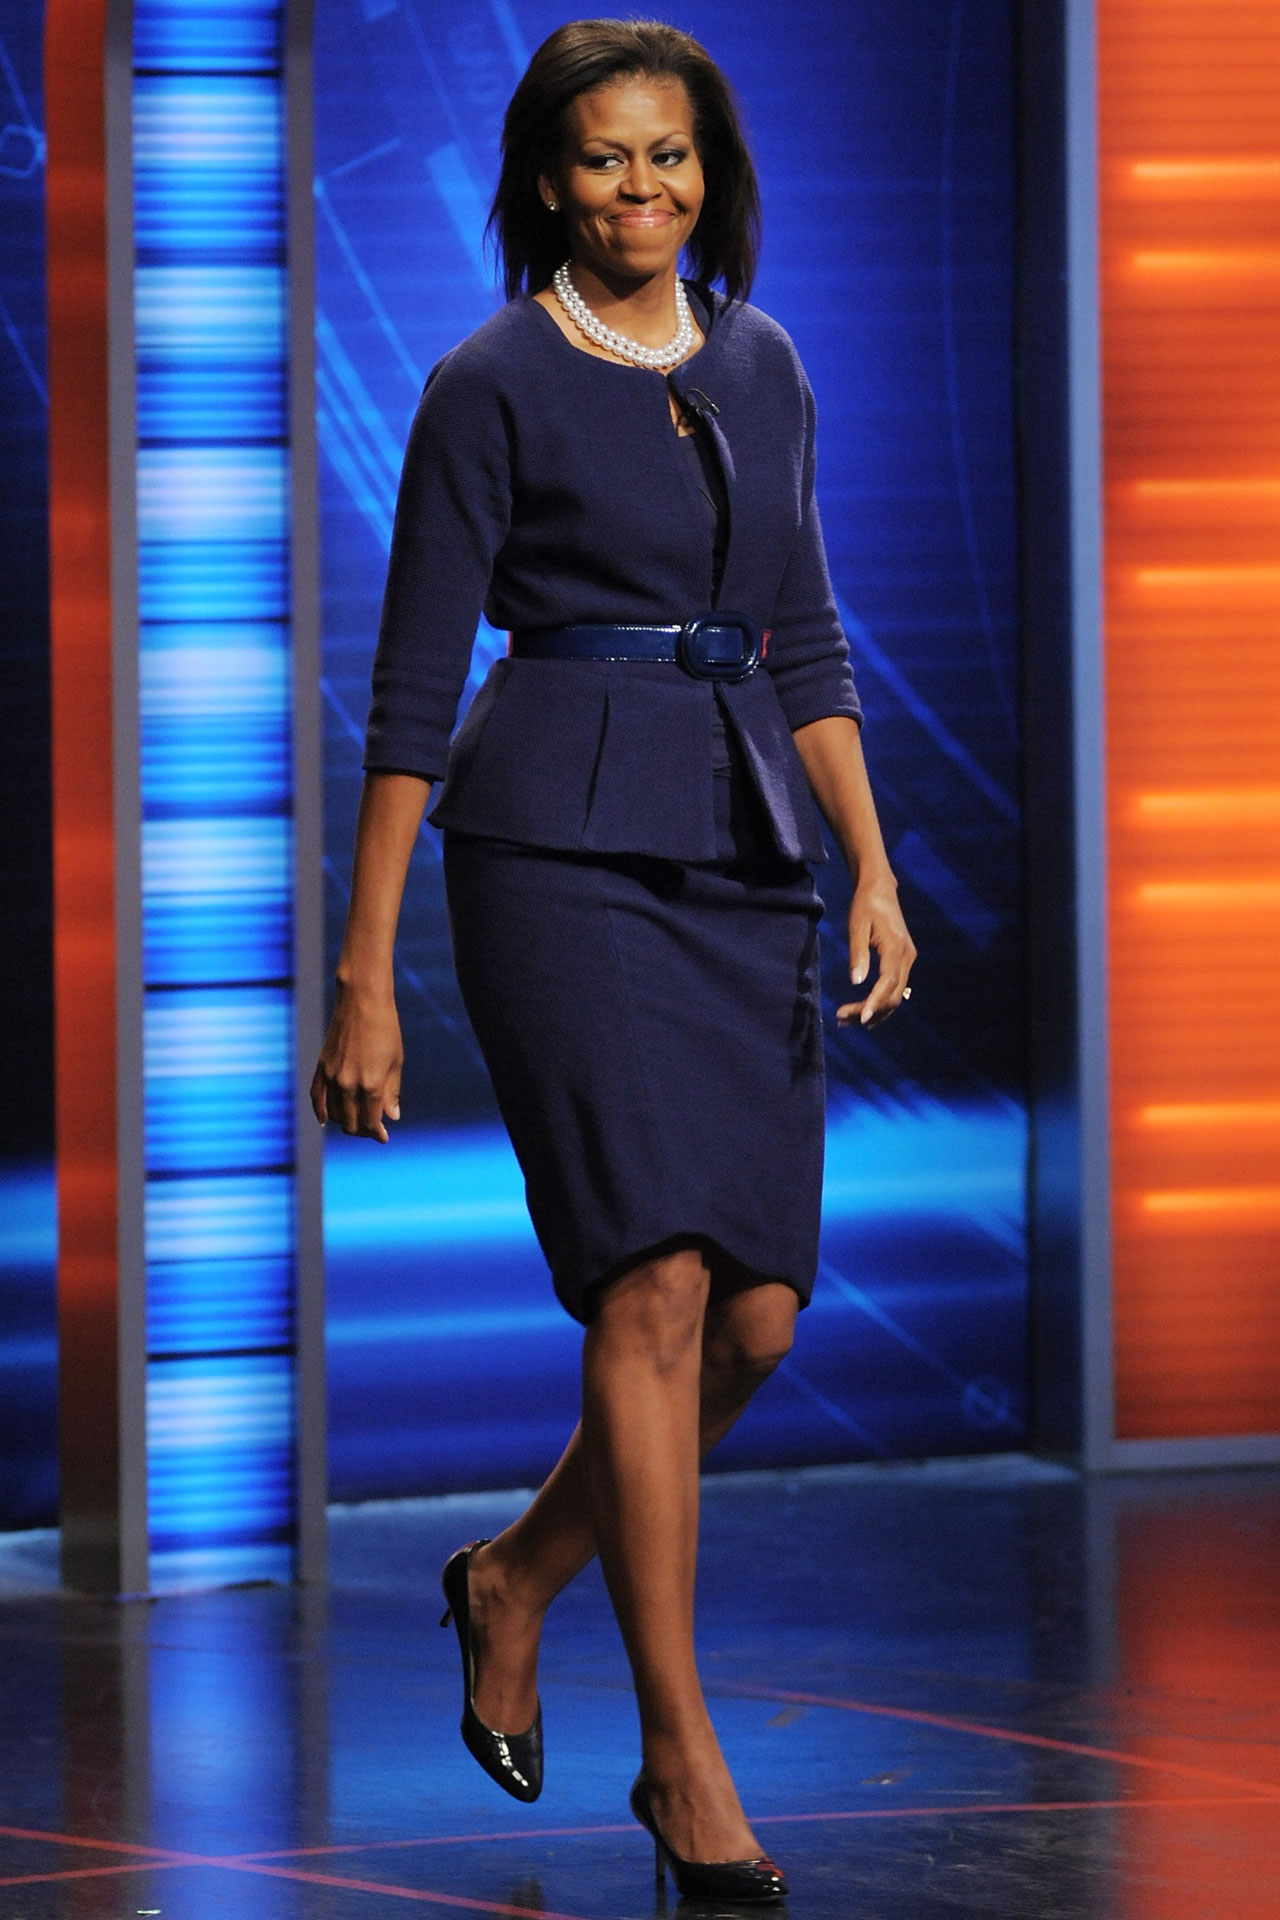 Vivienne Westwood Criticises Michelle Obama's Style ... K Michelle 2013 Body